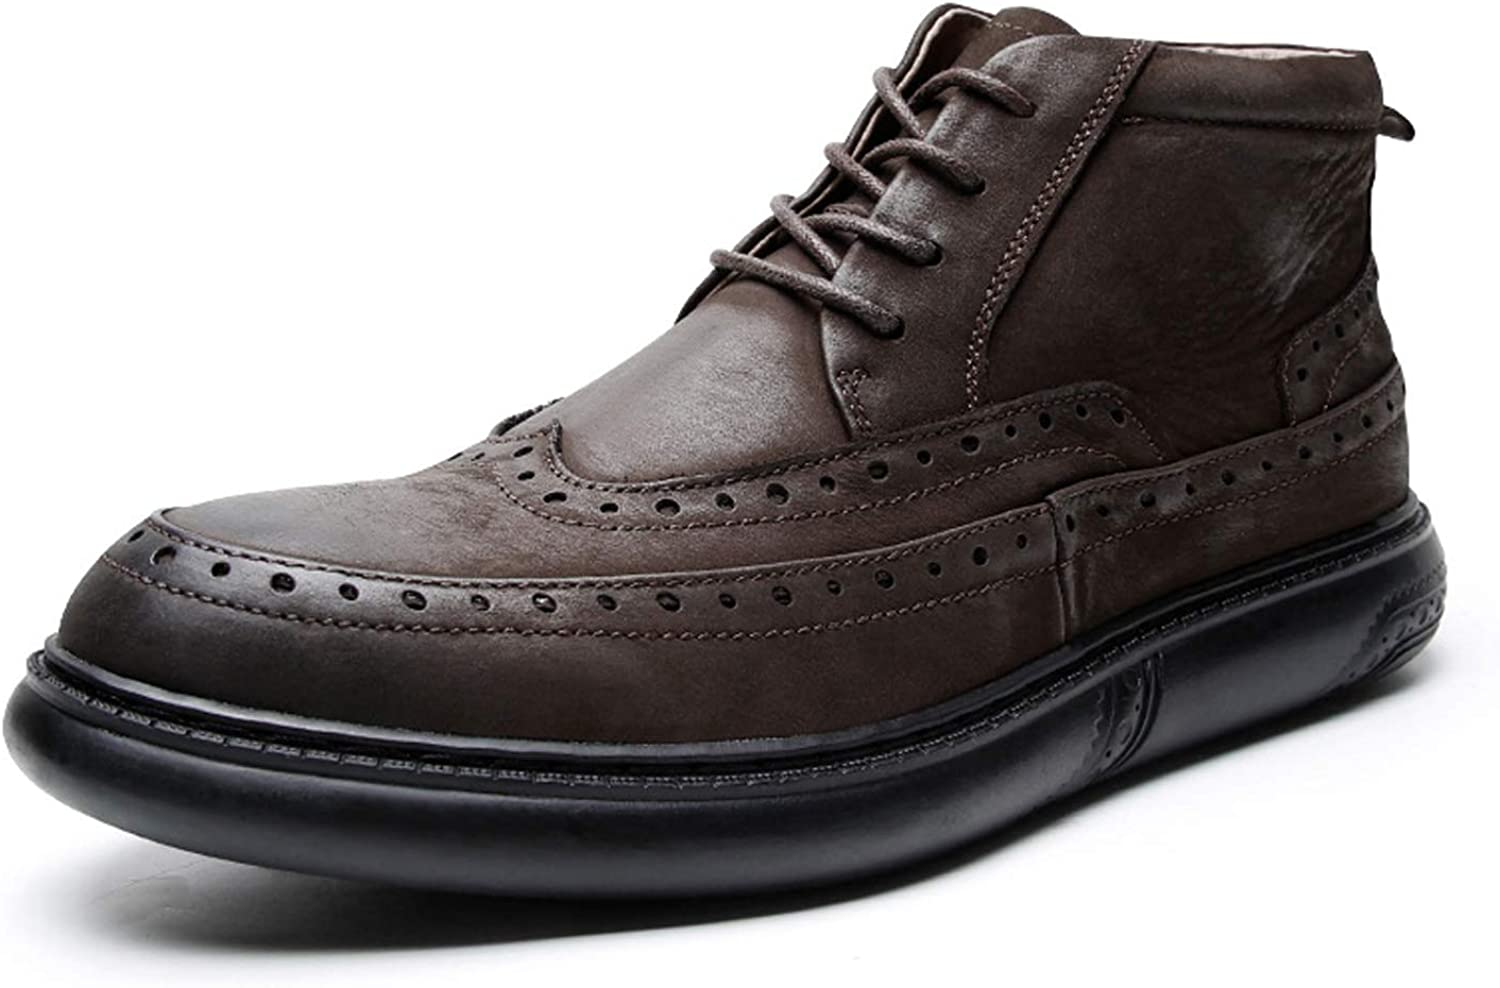 Ram King Men's Brogue shoes Fashion Business shoes